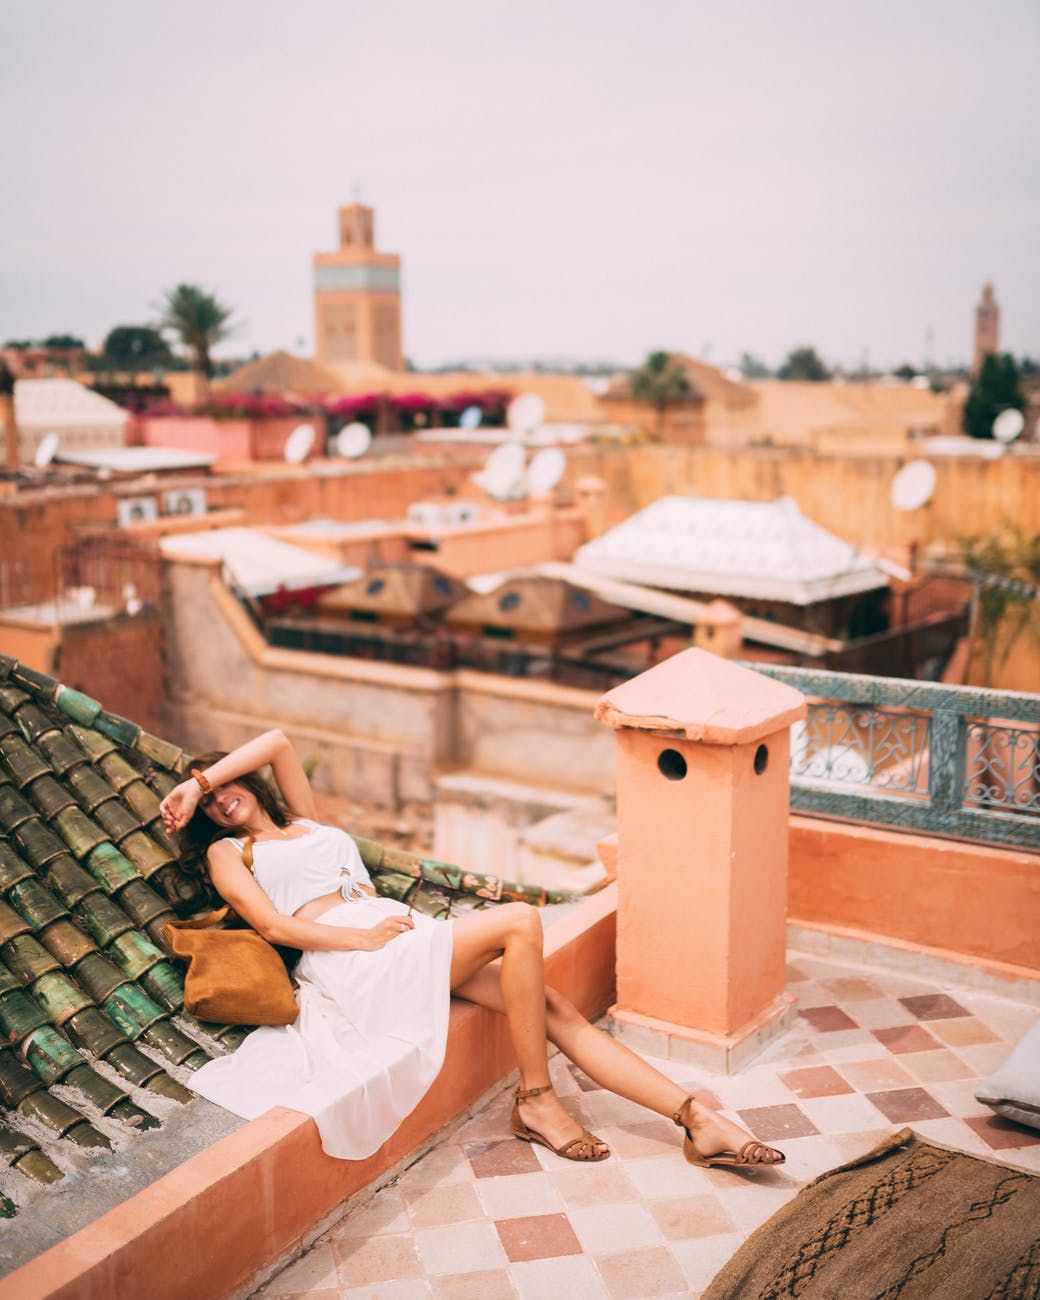 A woman in a white dress lying on a roof